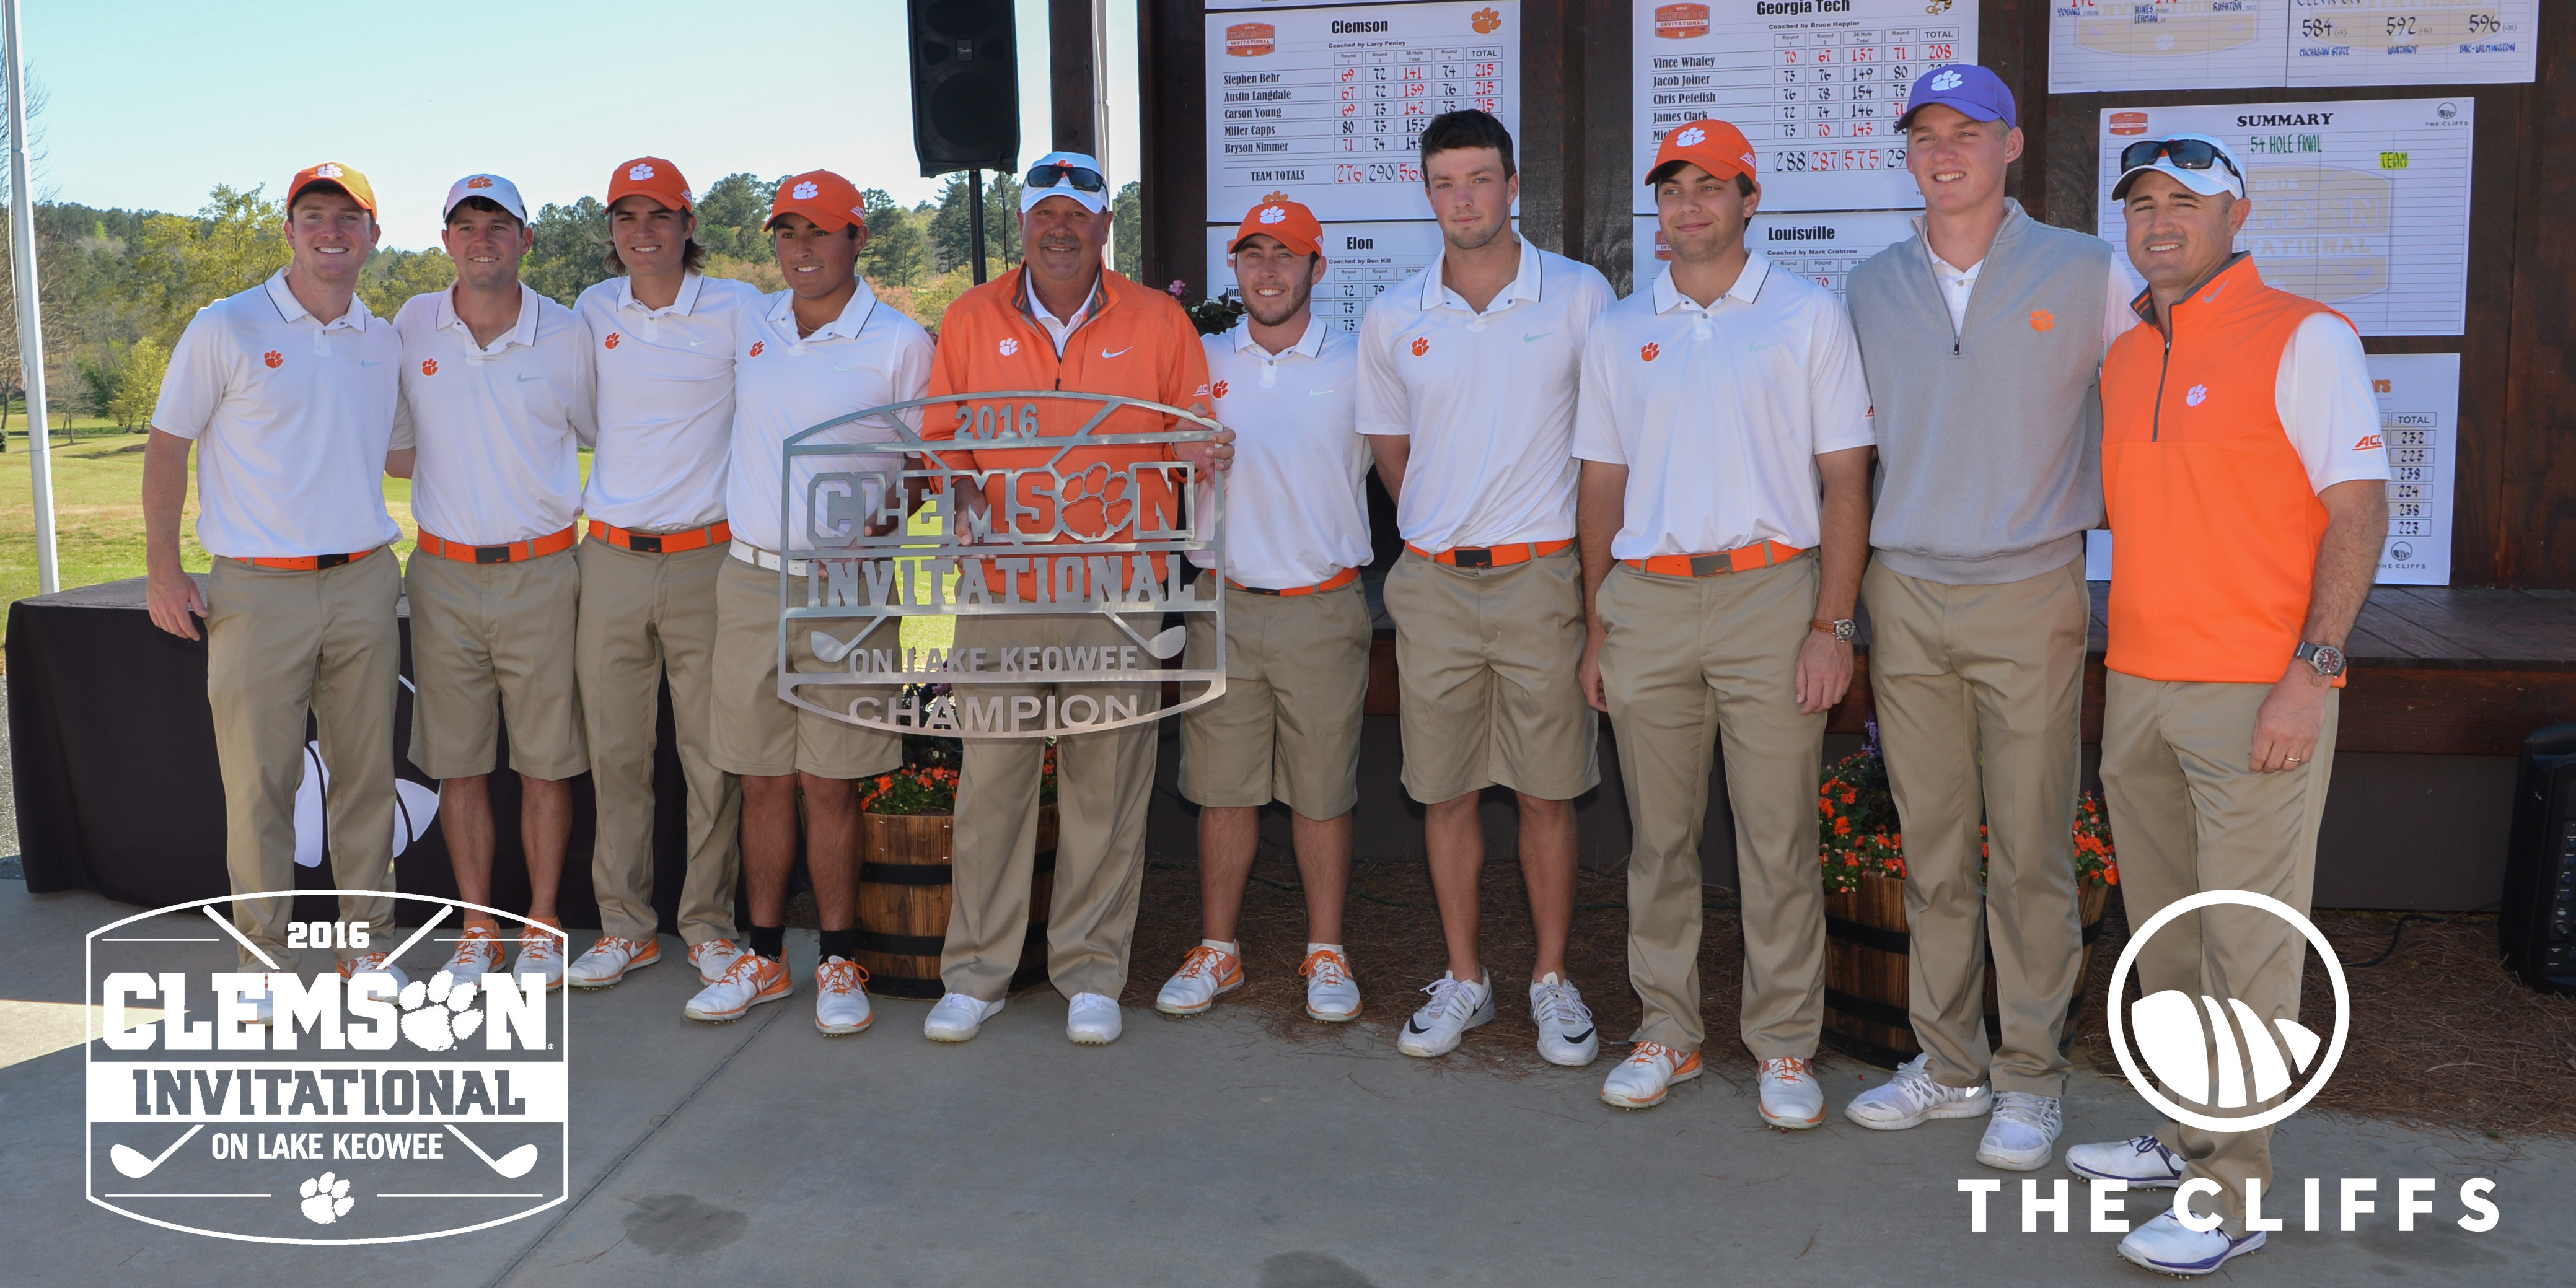 Tigers Win Clemson Invitational by 11 Shots